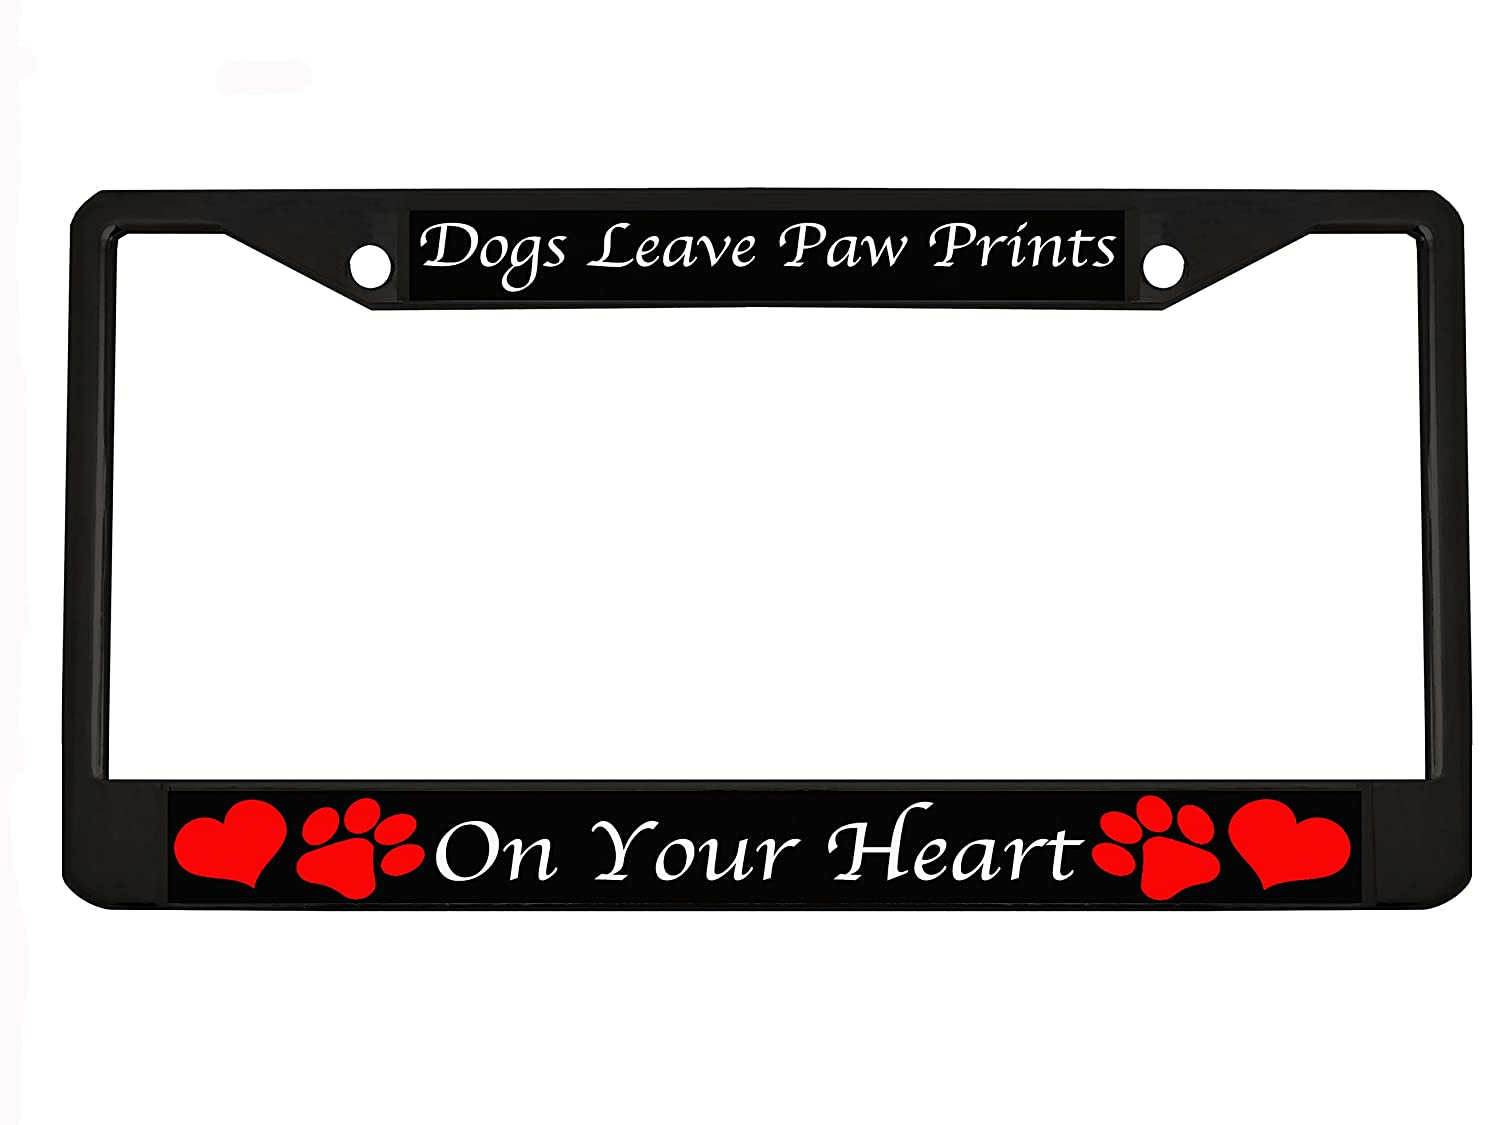 Dog leave paw prints on your heart Black Metal Auto License Plate Frame Car Tag Holder